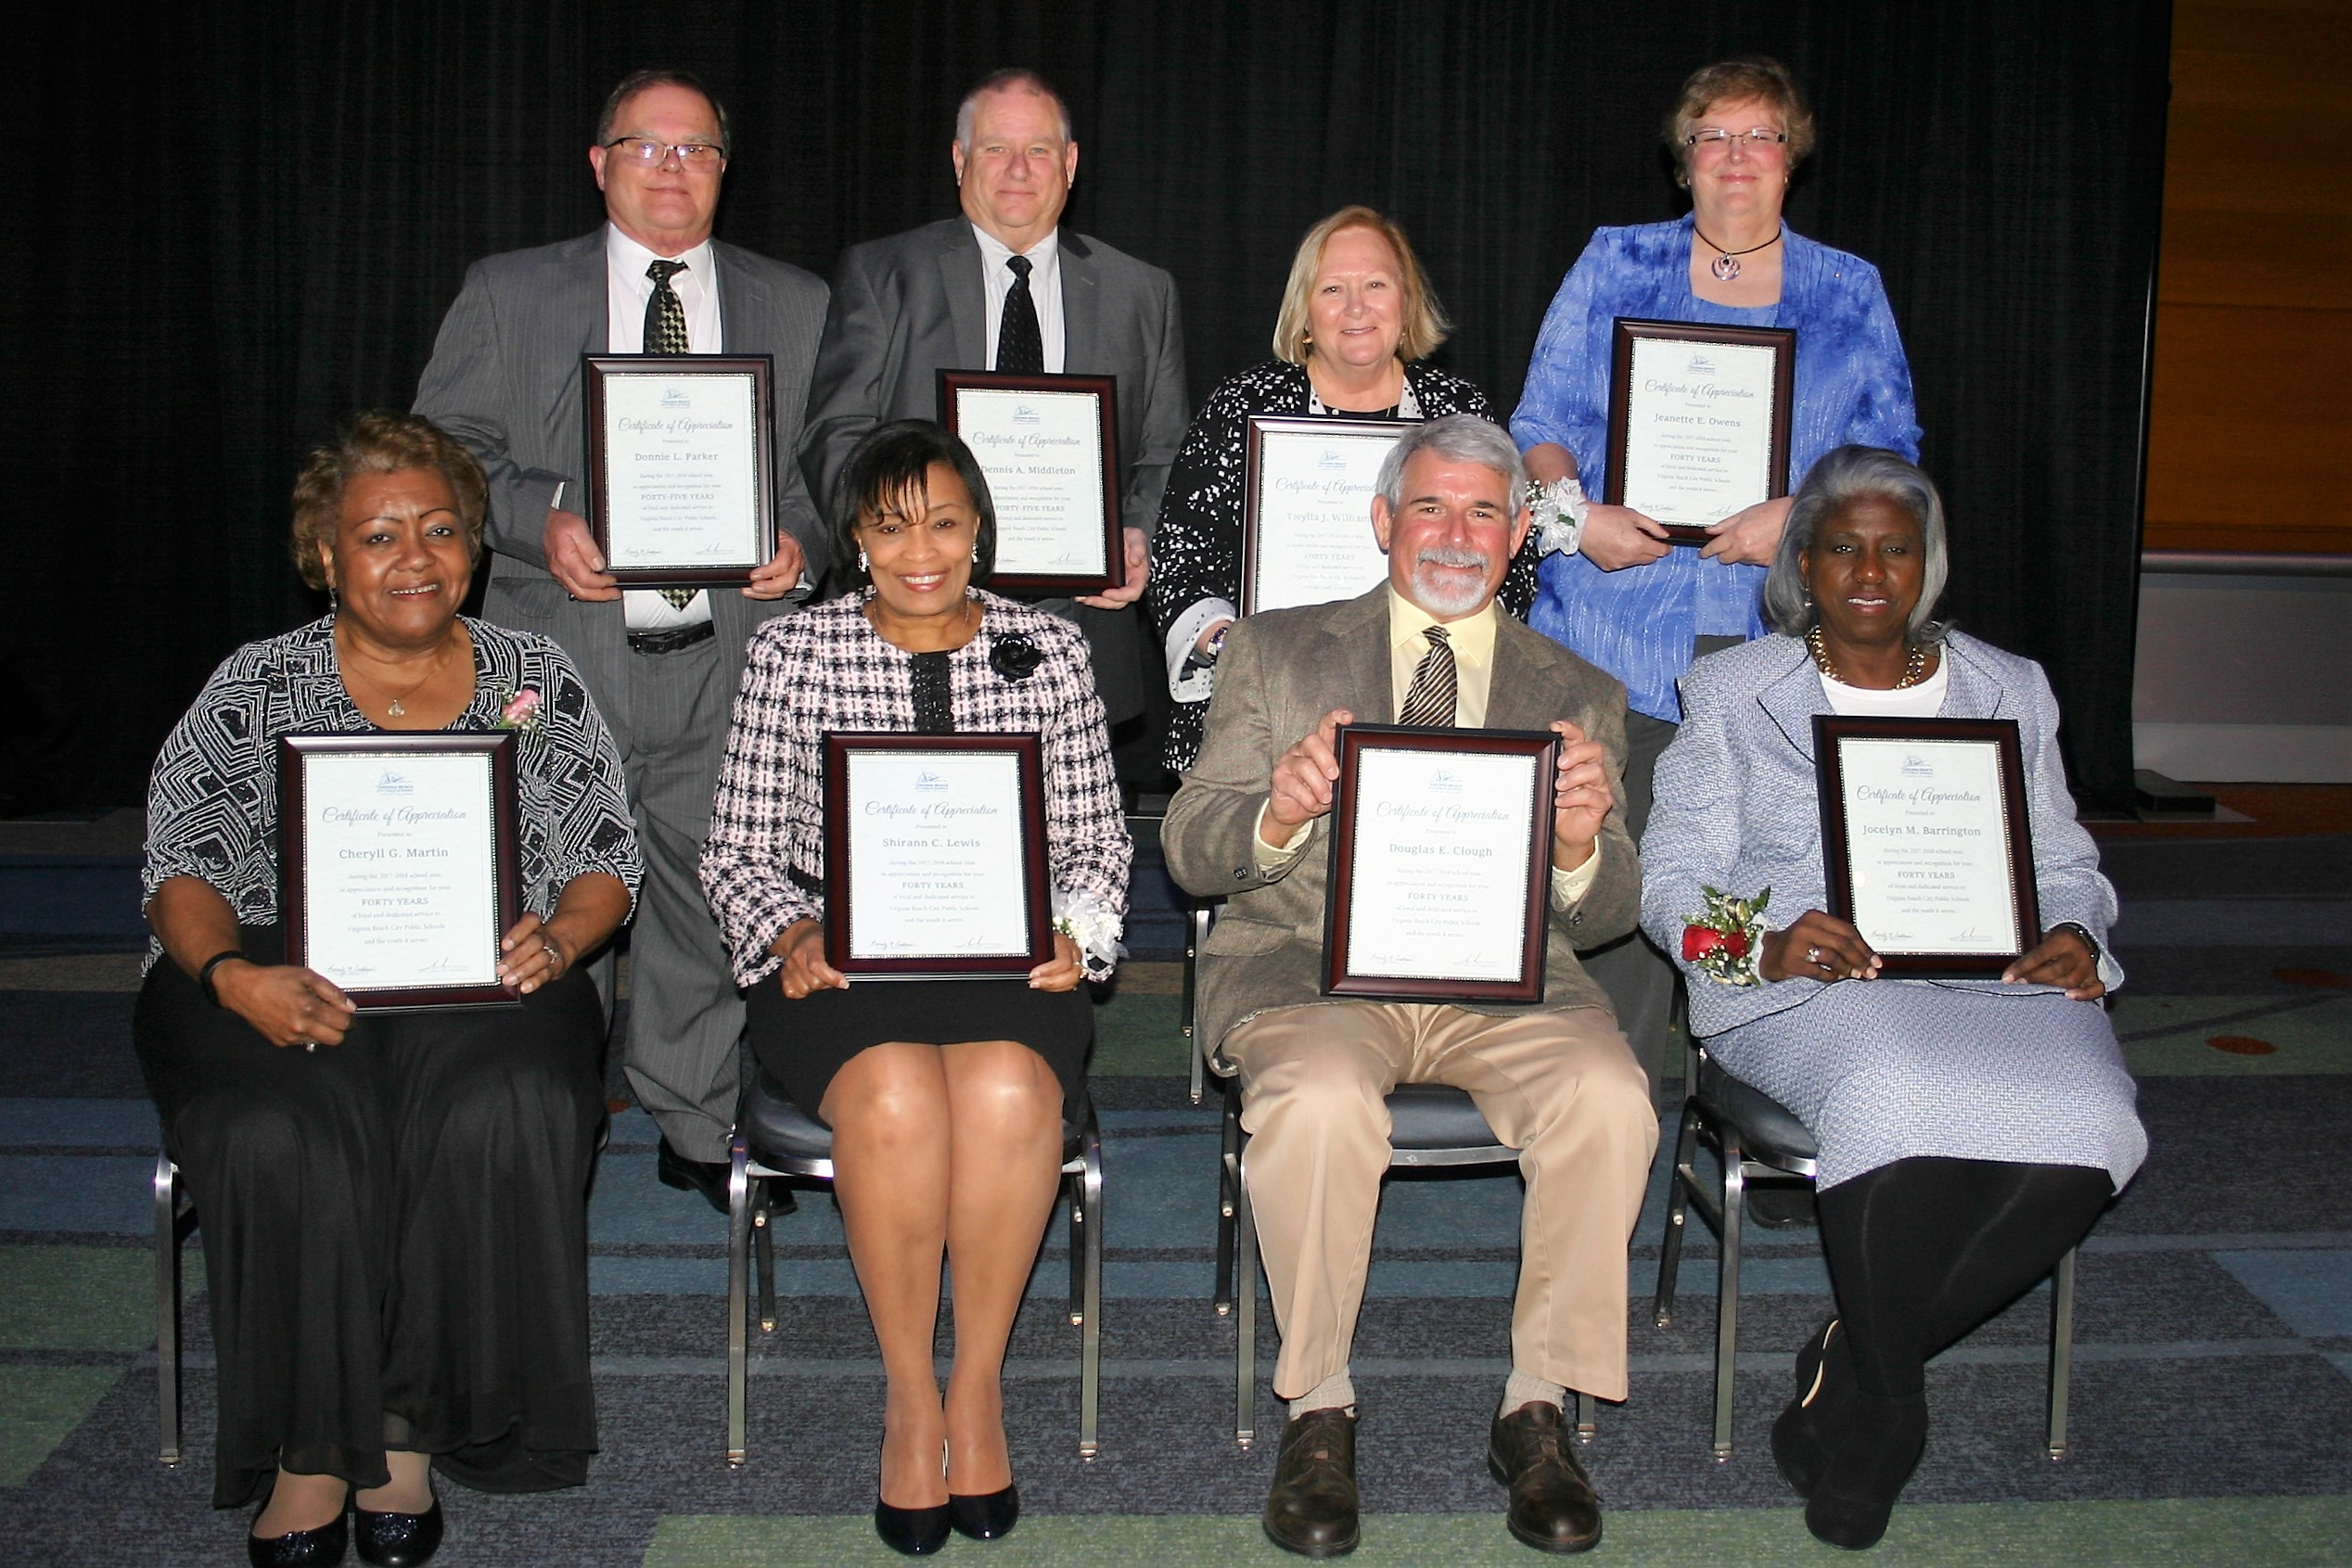 Division Celebrates Employees Decades Of Service To Vbcps